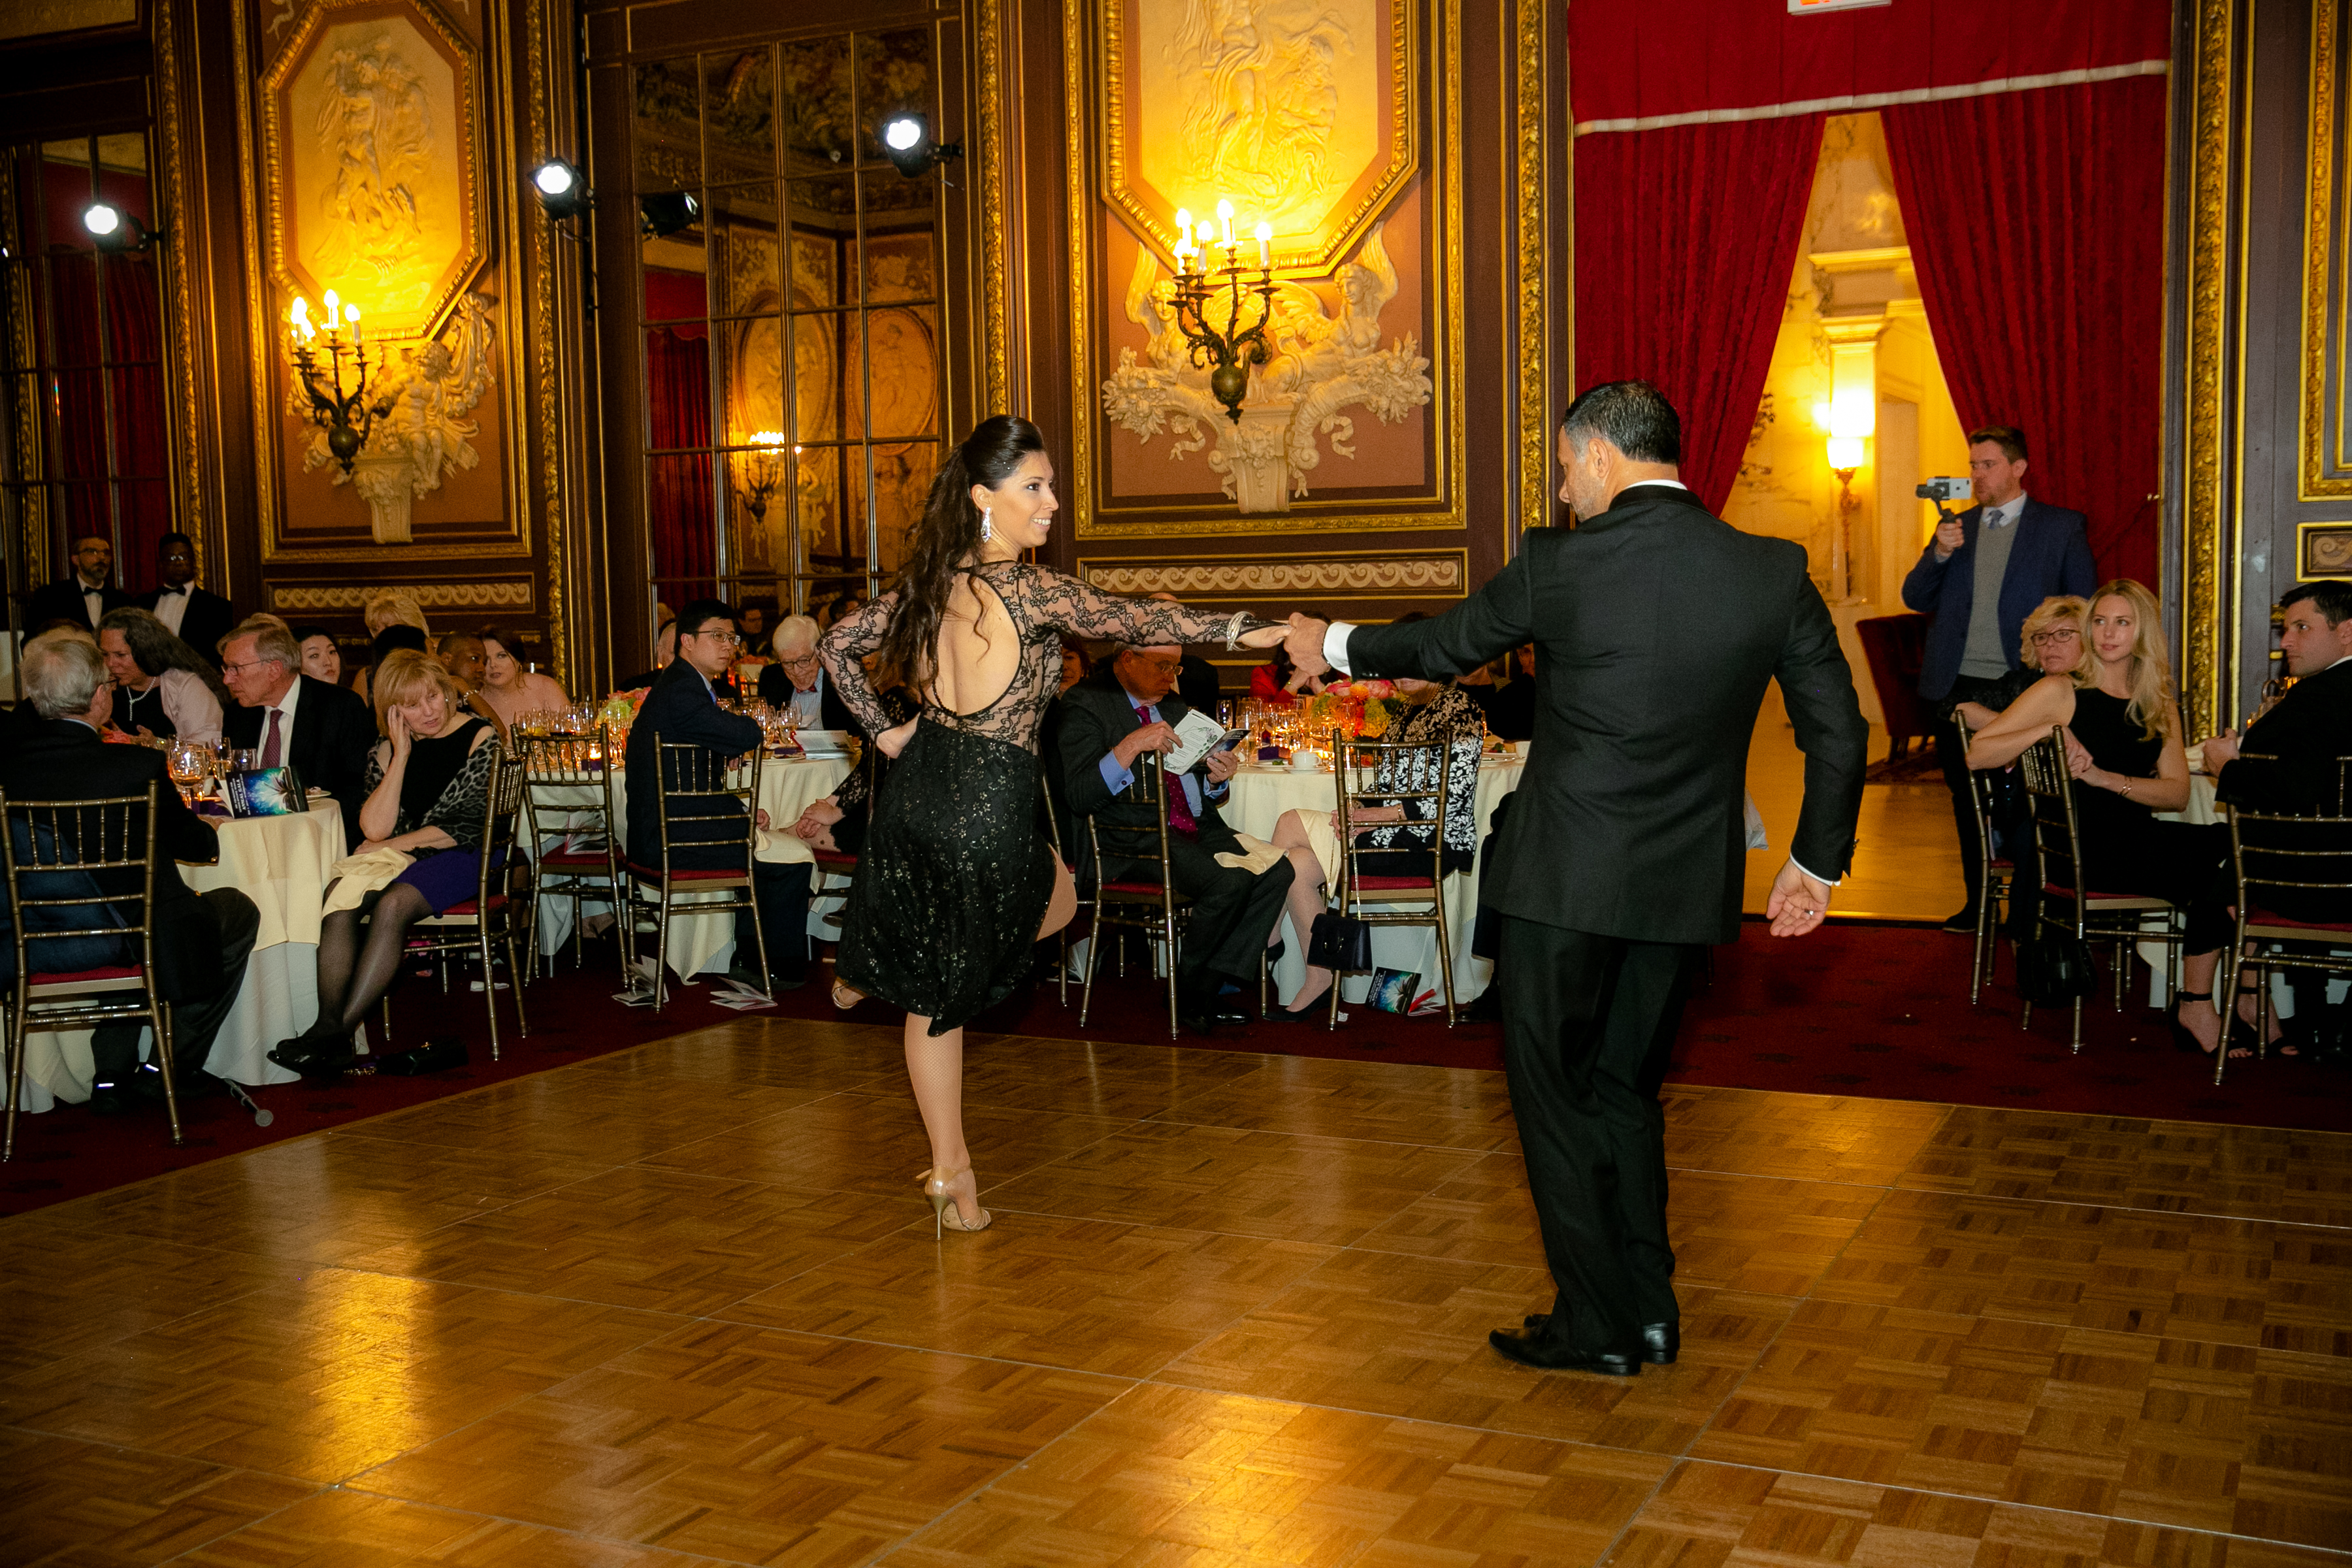 A man and a woman are dancing alone on the ballroom while seated guests watch